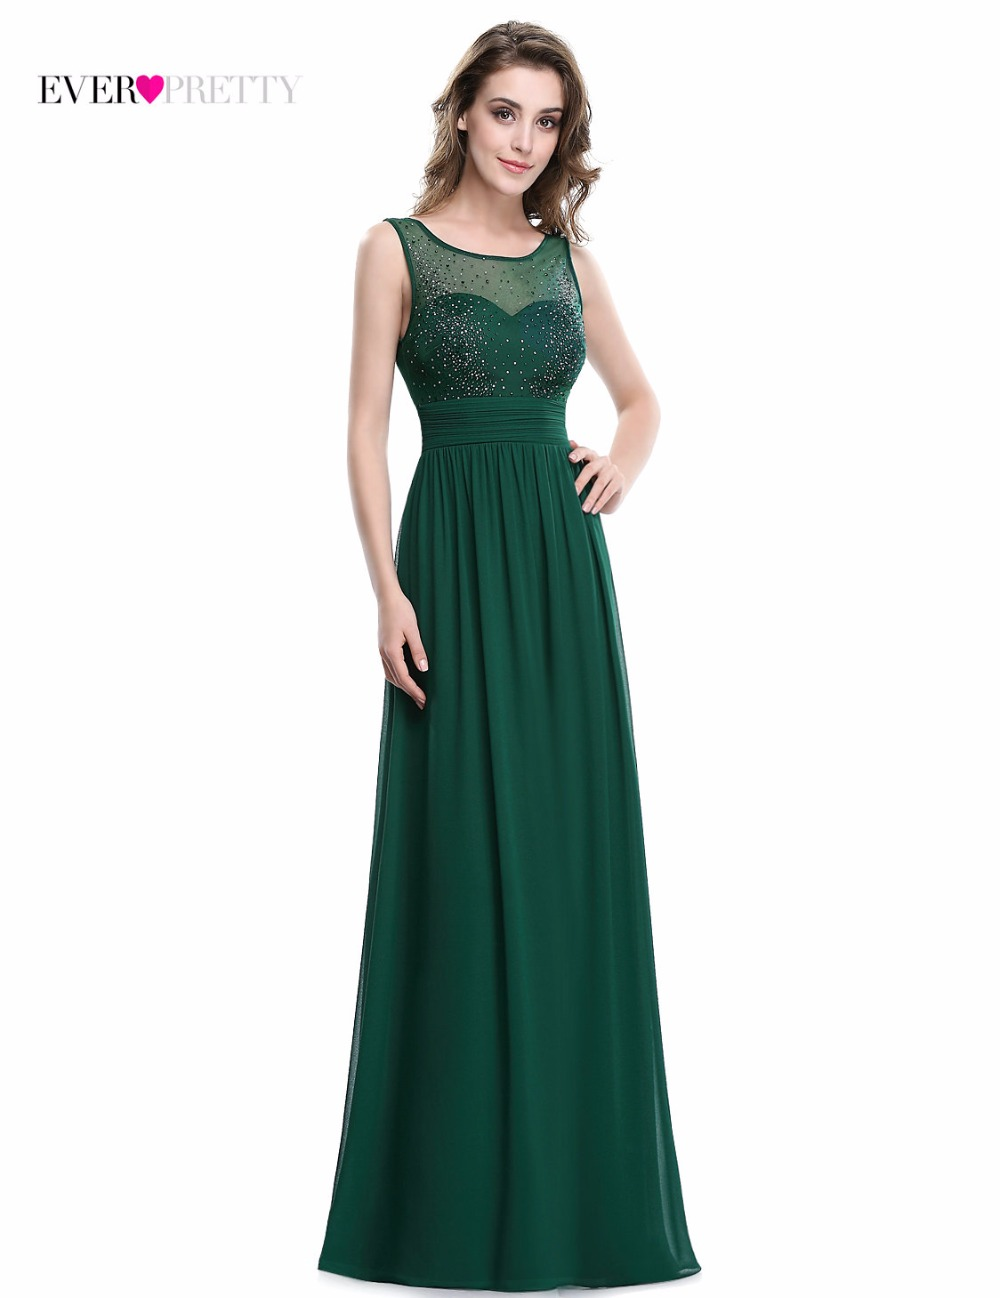 Elegant Long Evening Dress Ever pretty EP08784 2017 Real Picture Green Chiffon A-Line Sleeveless Beadings Evening Party Gowns elegant beaded a line appliques court train evening dress